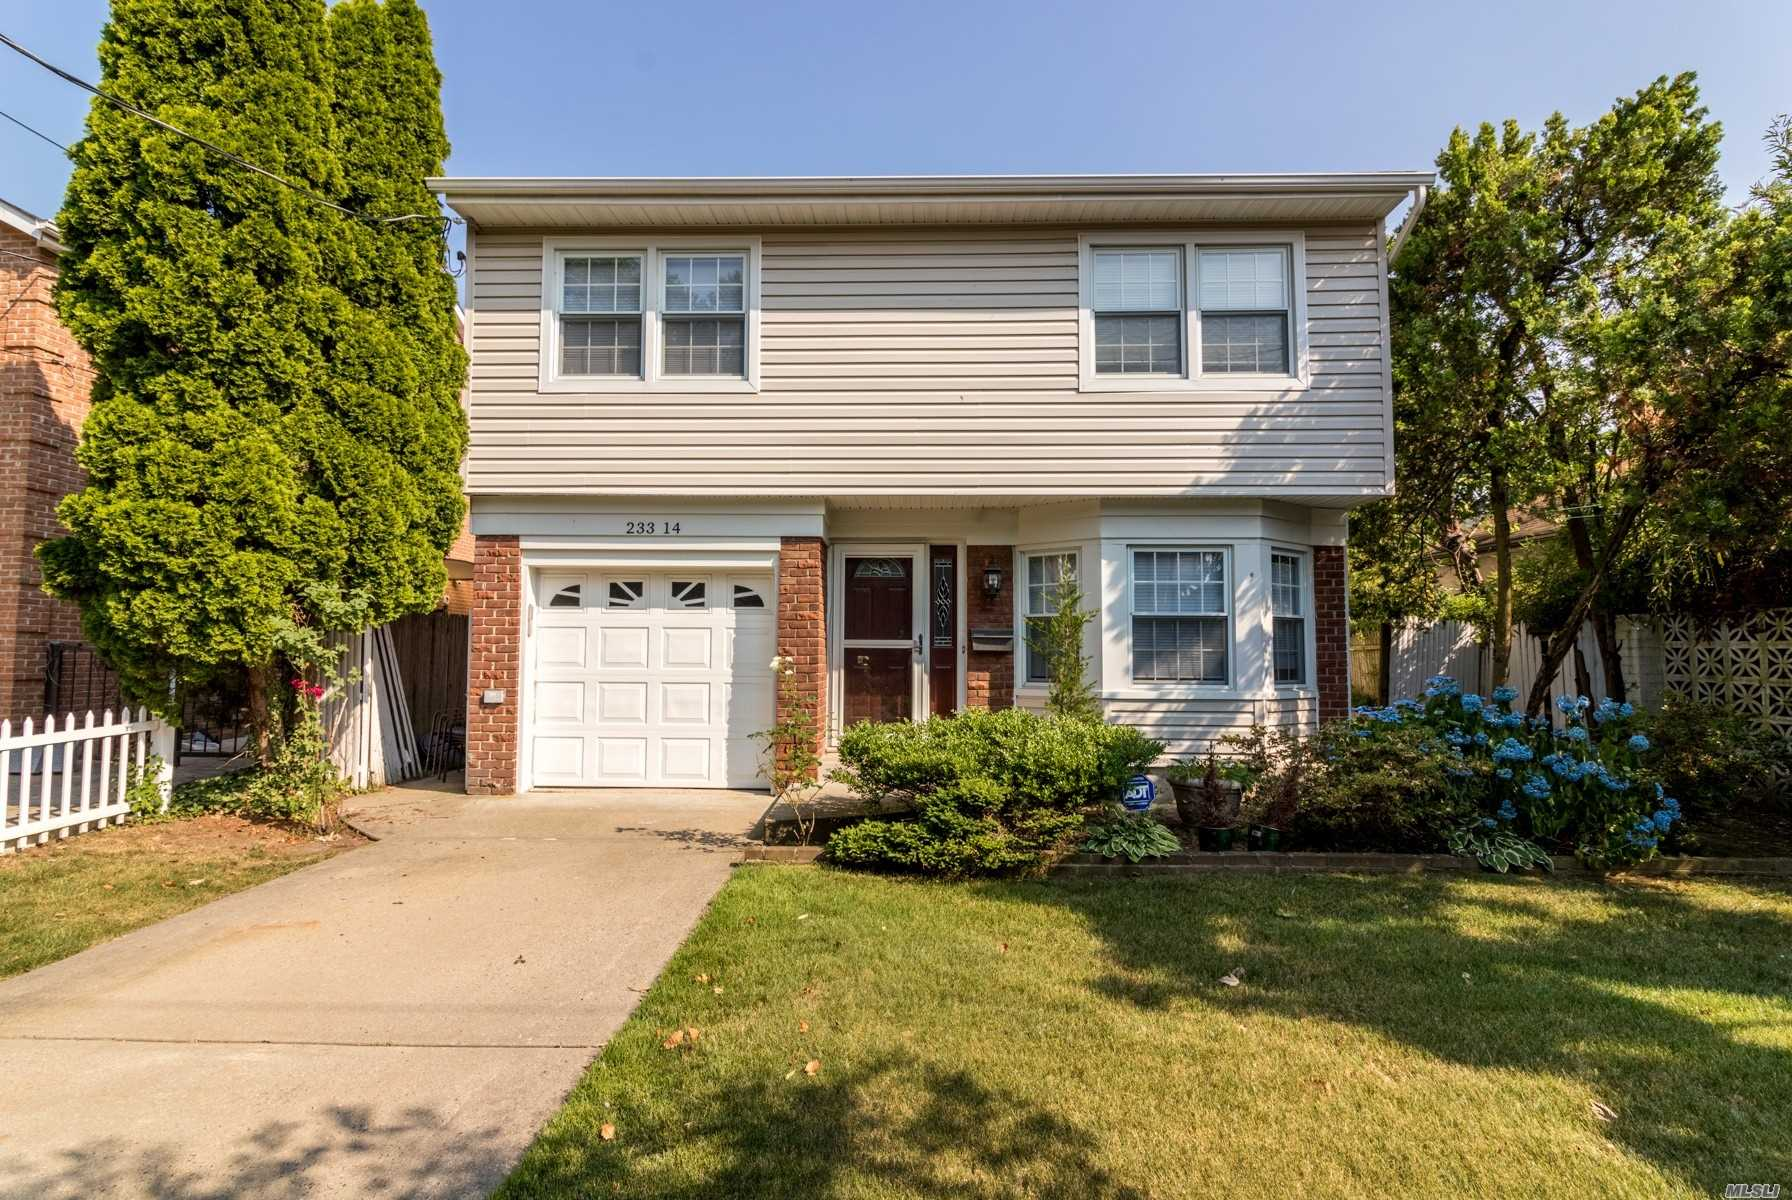 Prime Location! 5 Minute-Walk To Lirr Douglaston, Top-Ranked Ps98, Pre-School. 10-Min Walk To Northern Blvd. Quiet Tree-Lined Block With Ample Parking. Home Fully Renovated In 2015, All New Top-Line Appliances, Inc Bosch Dbl Oven, Convection Stove-Top, Dishwasher, French Door Fridge And Under-Counter Microwave. Split Ac In Each Room. Custom Walk-In Closet In Master Bedroom, Italian Marble Tiled Bathroom. Vaulted Ceiling Kitchen/Dining Room Leading To The Large Deck Perfect For Entertaining. Rare